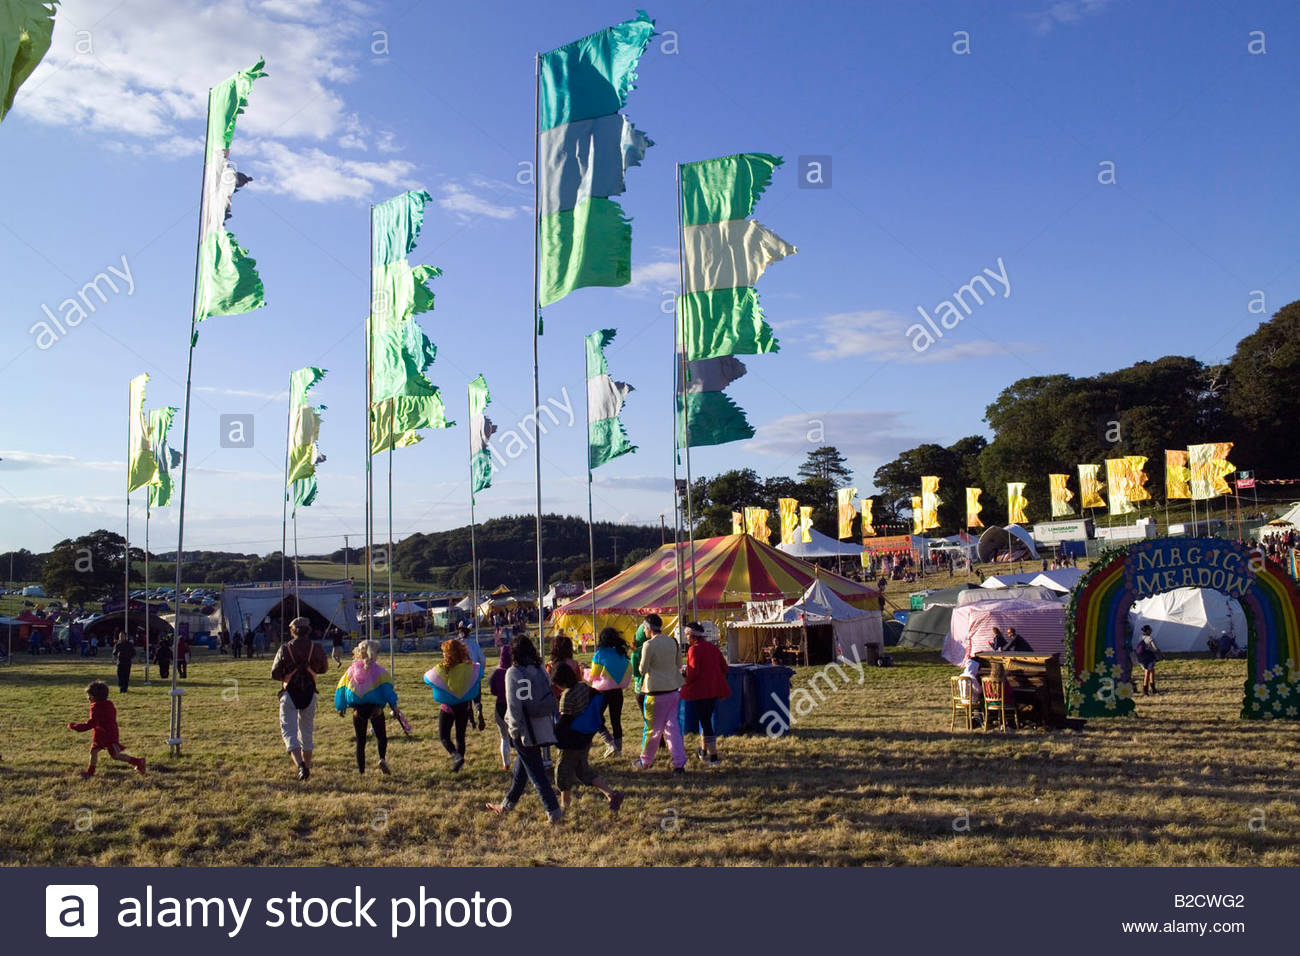 La magia Meadow Camp Bestival Music Festival de julio de 2008 Break Lulworth Dorset, Inglaterra Imagen De Stock